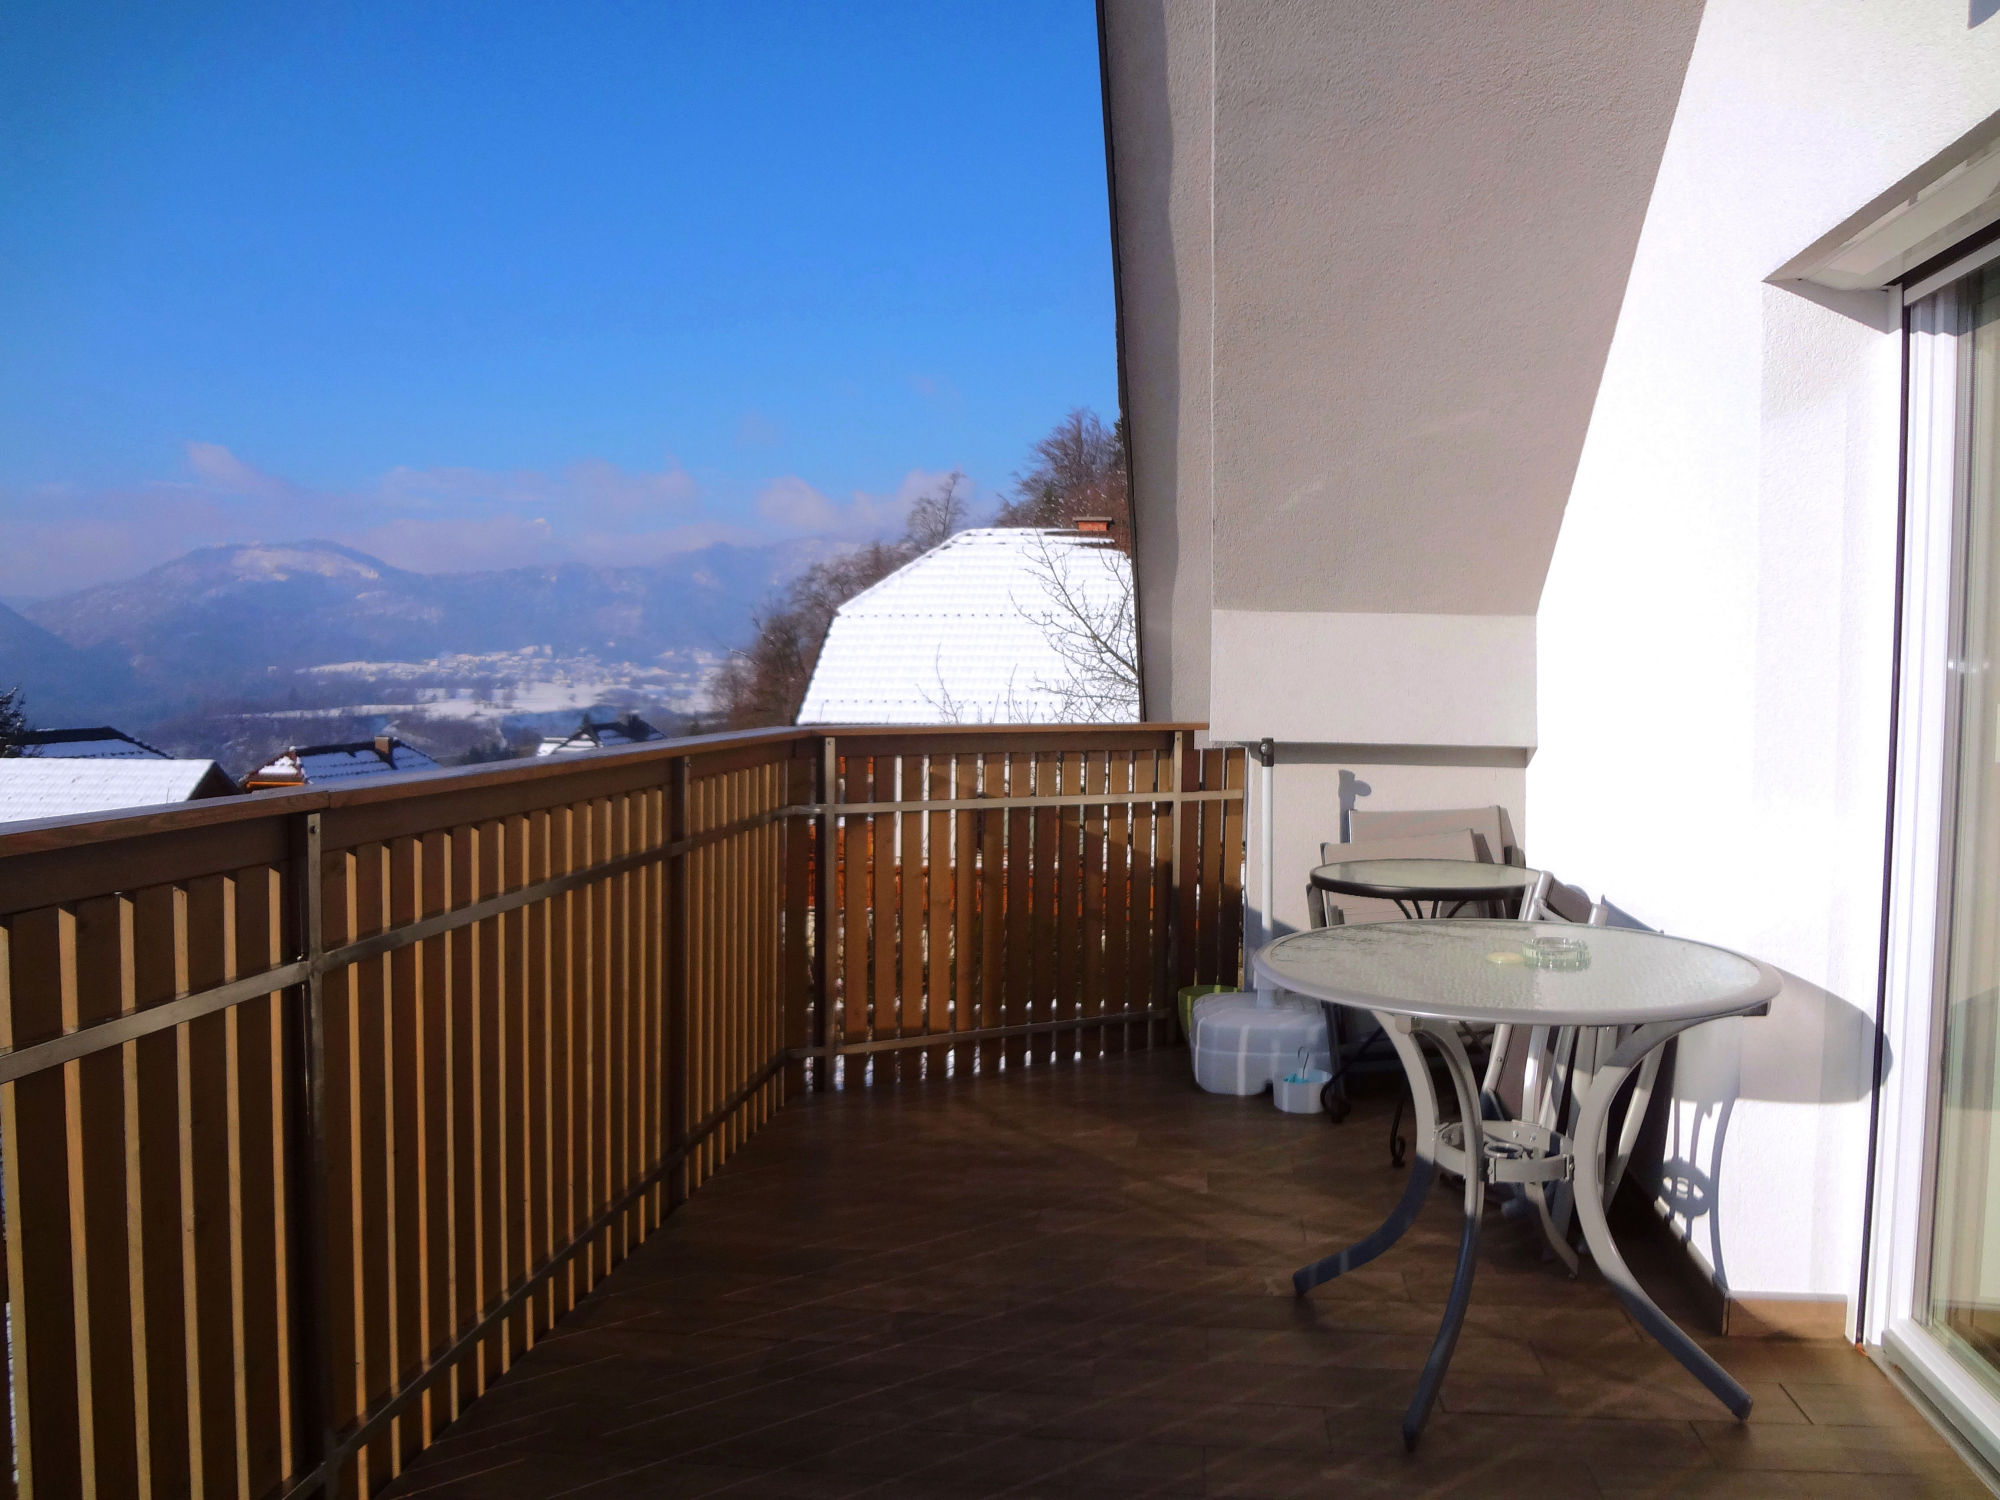 A wintry view towards the Slovenian Alps from the balcony of Apartments Fine Stay in Slovenia